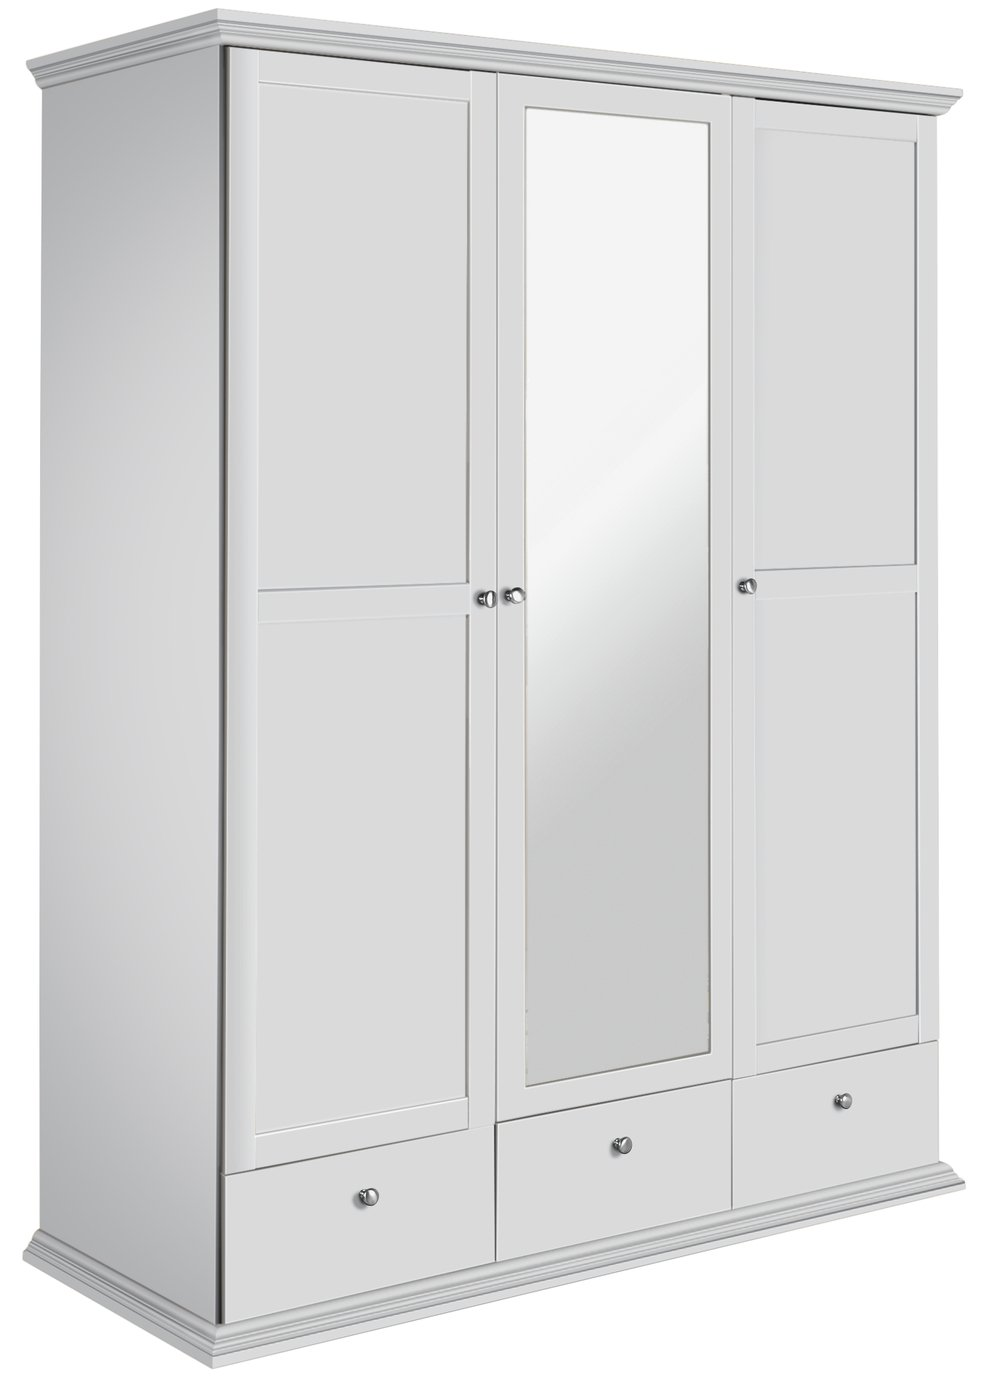 Argos Home Canterbury 3 Door 3 Drawer Mirrored Wardrobe